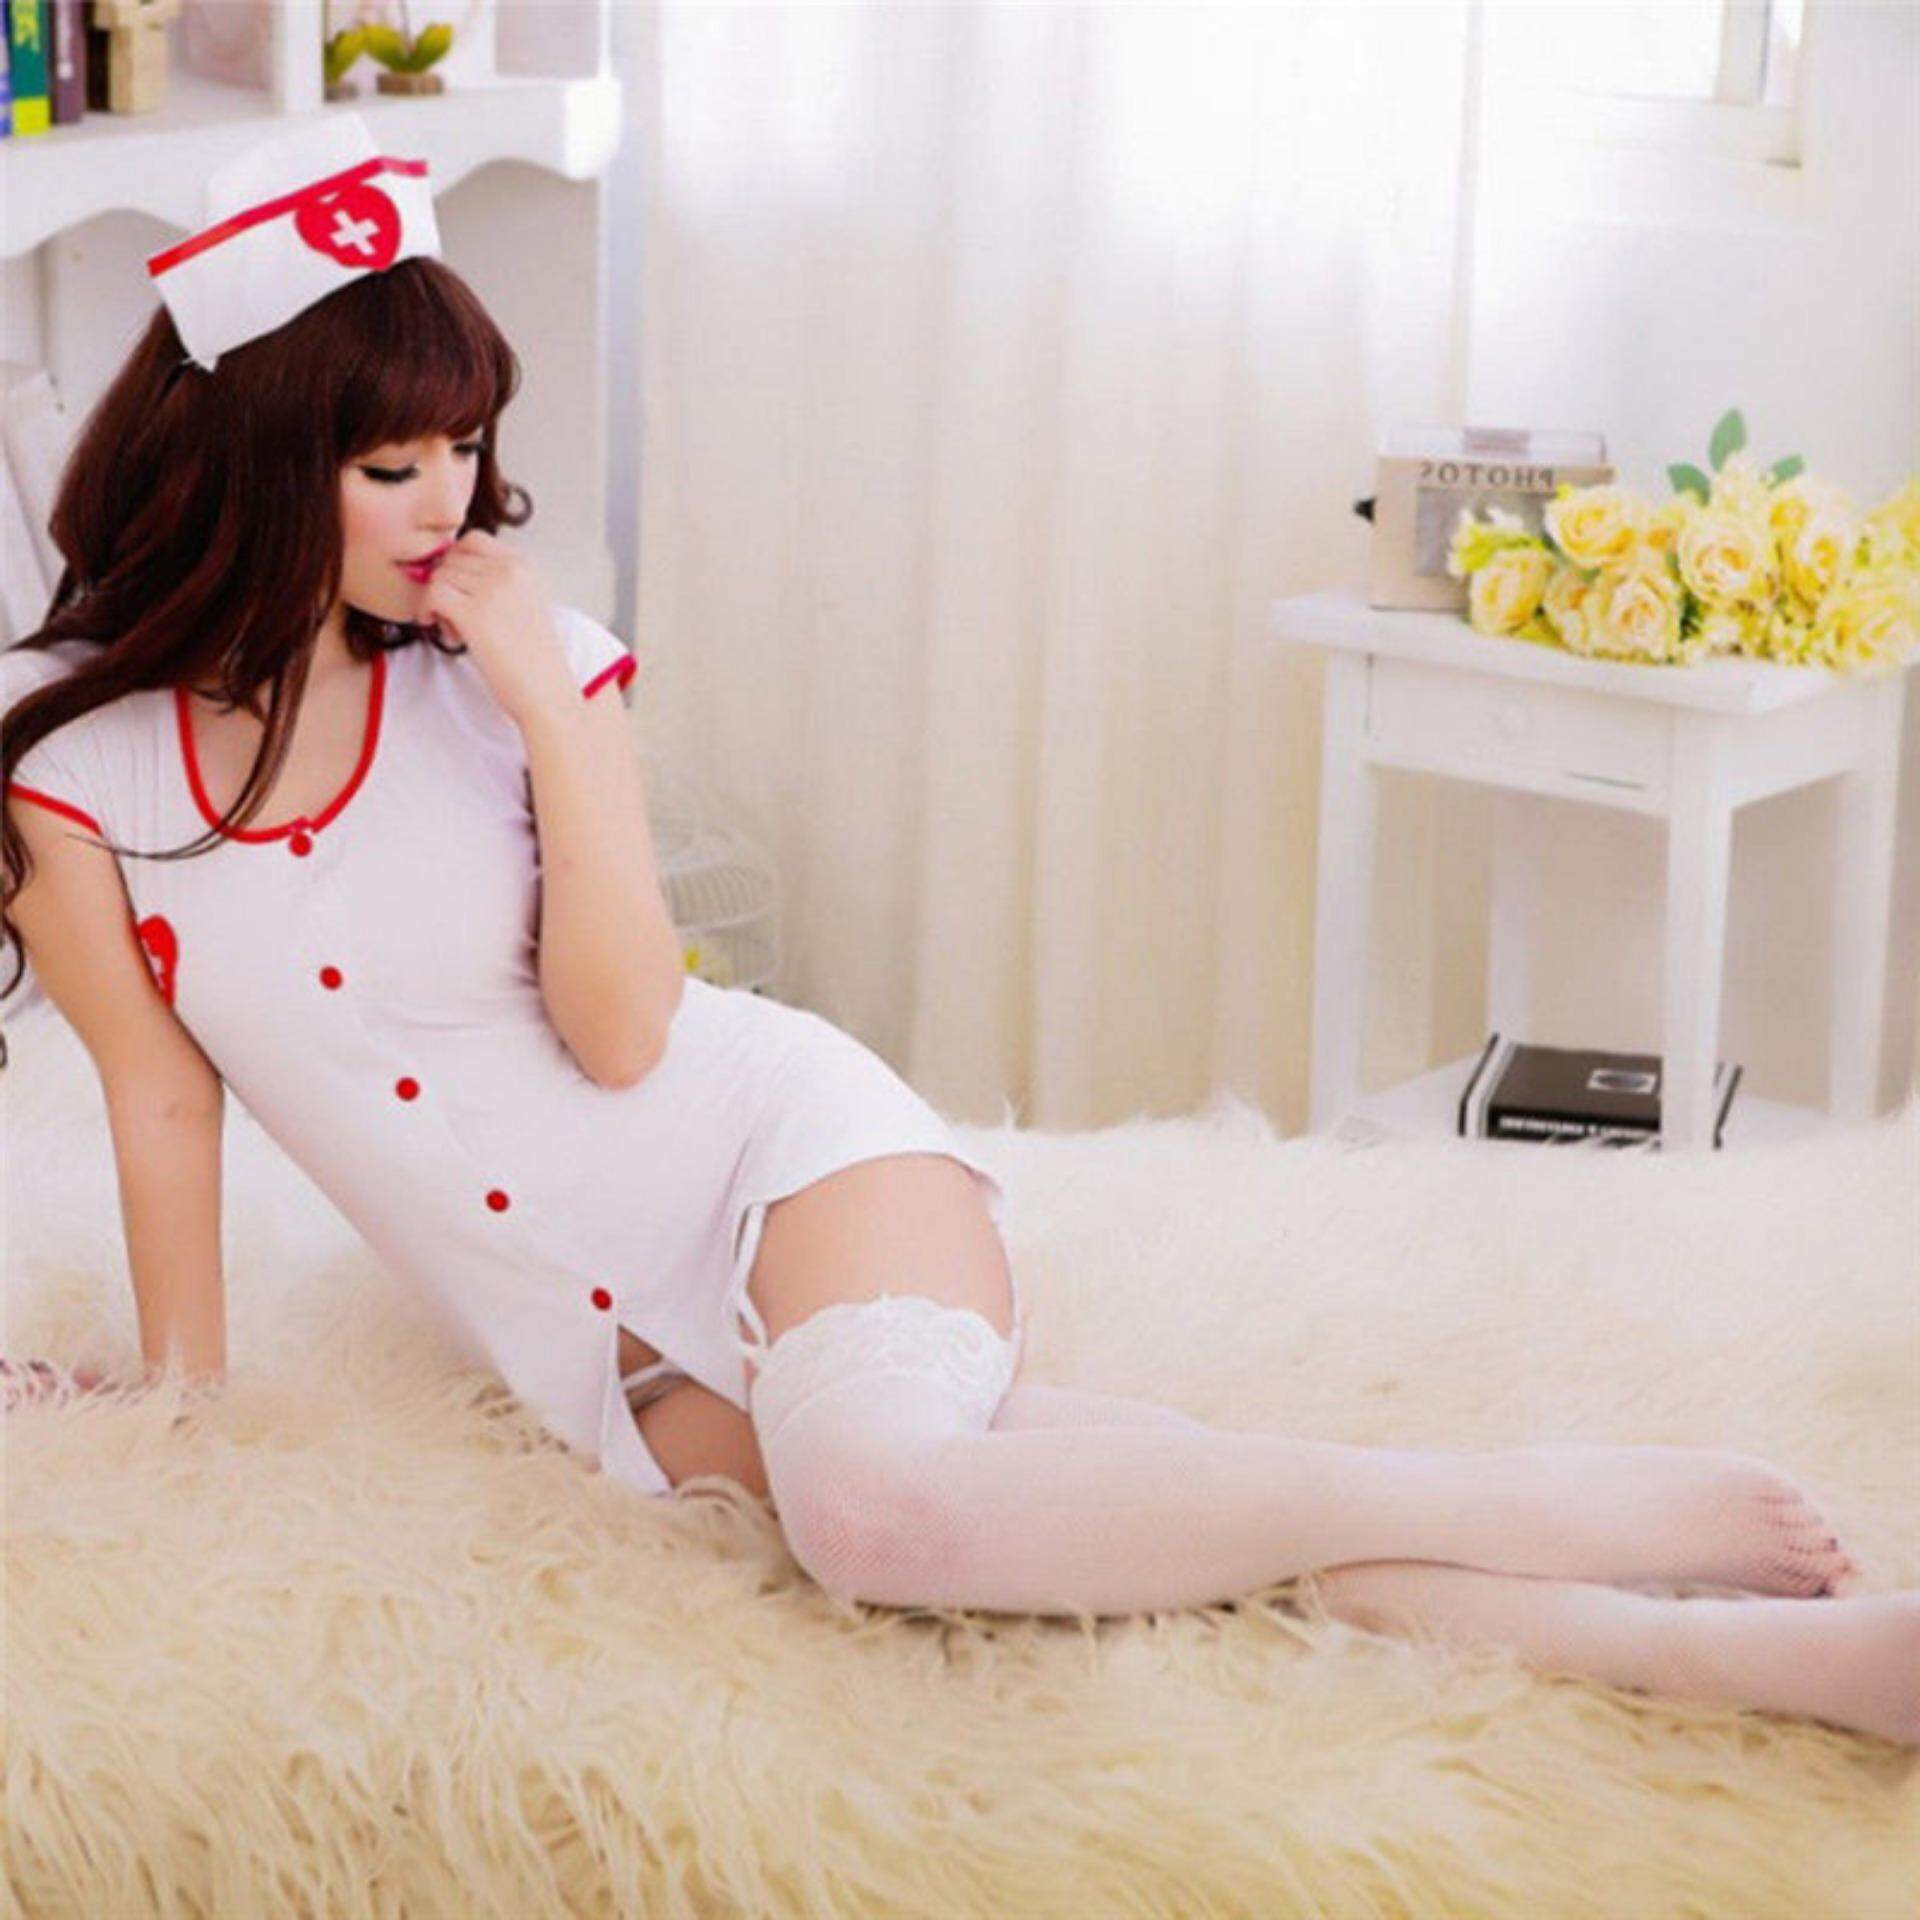 Nurse Fancy Dress Cosplay Club Wear Outfit Costume Sexy Lingerie Adult Women